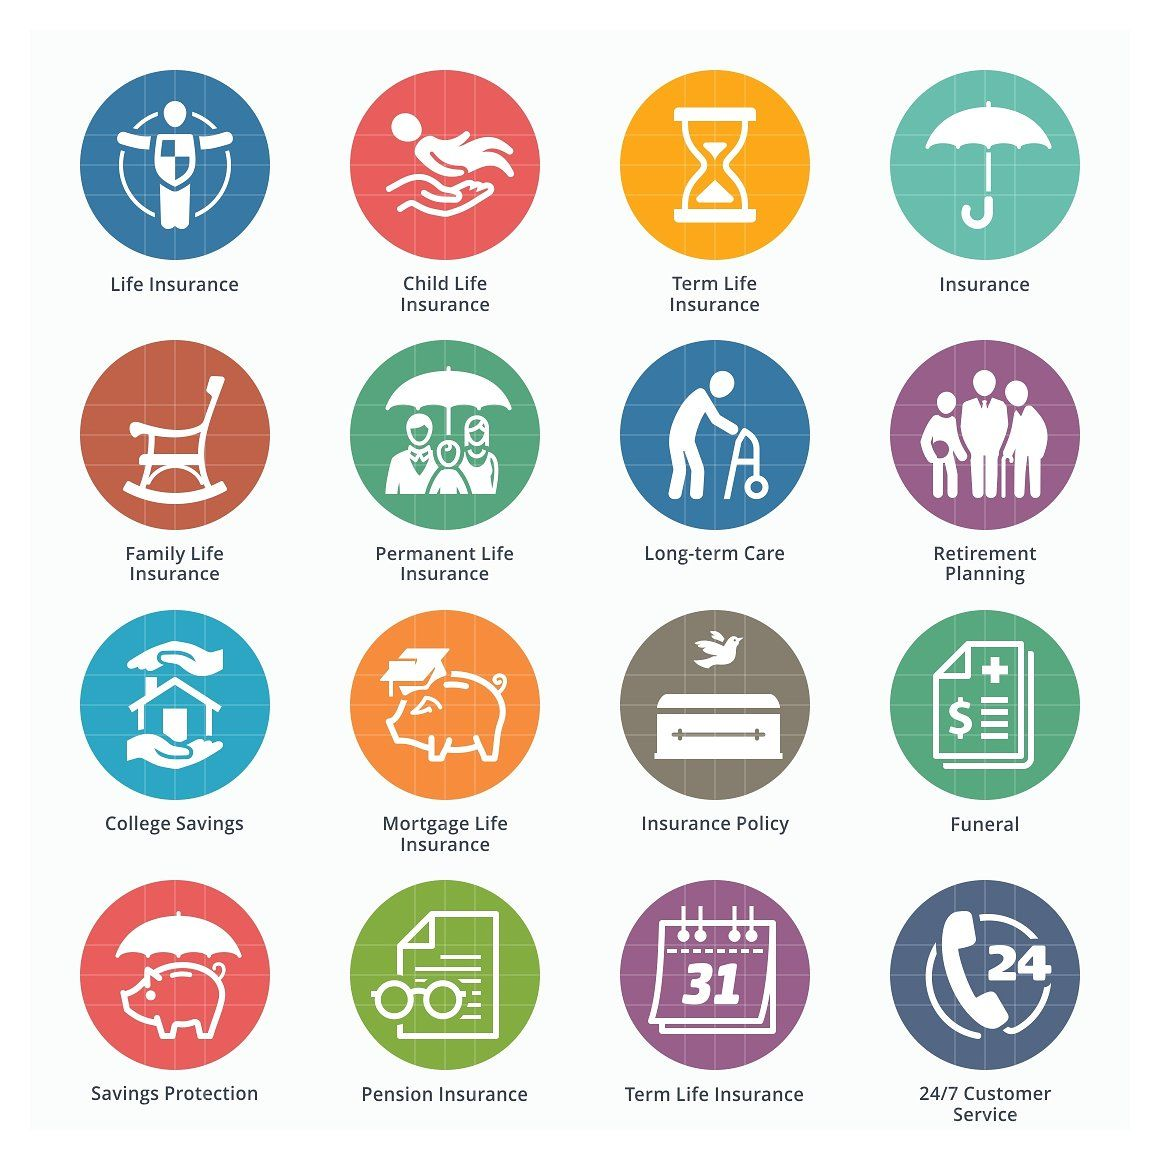 Life Insurance Icons Colored materialsprintedwebsites